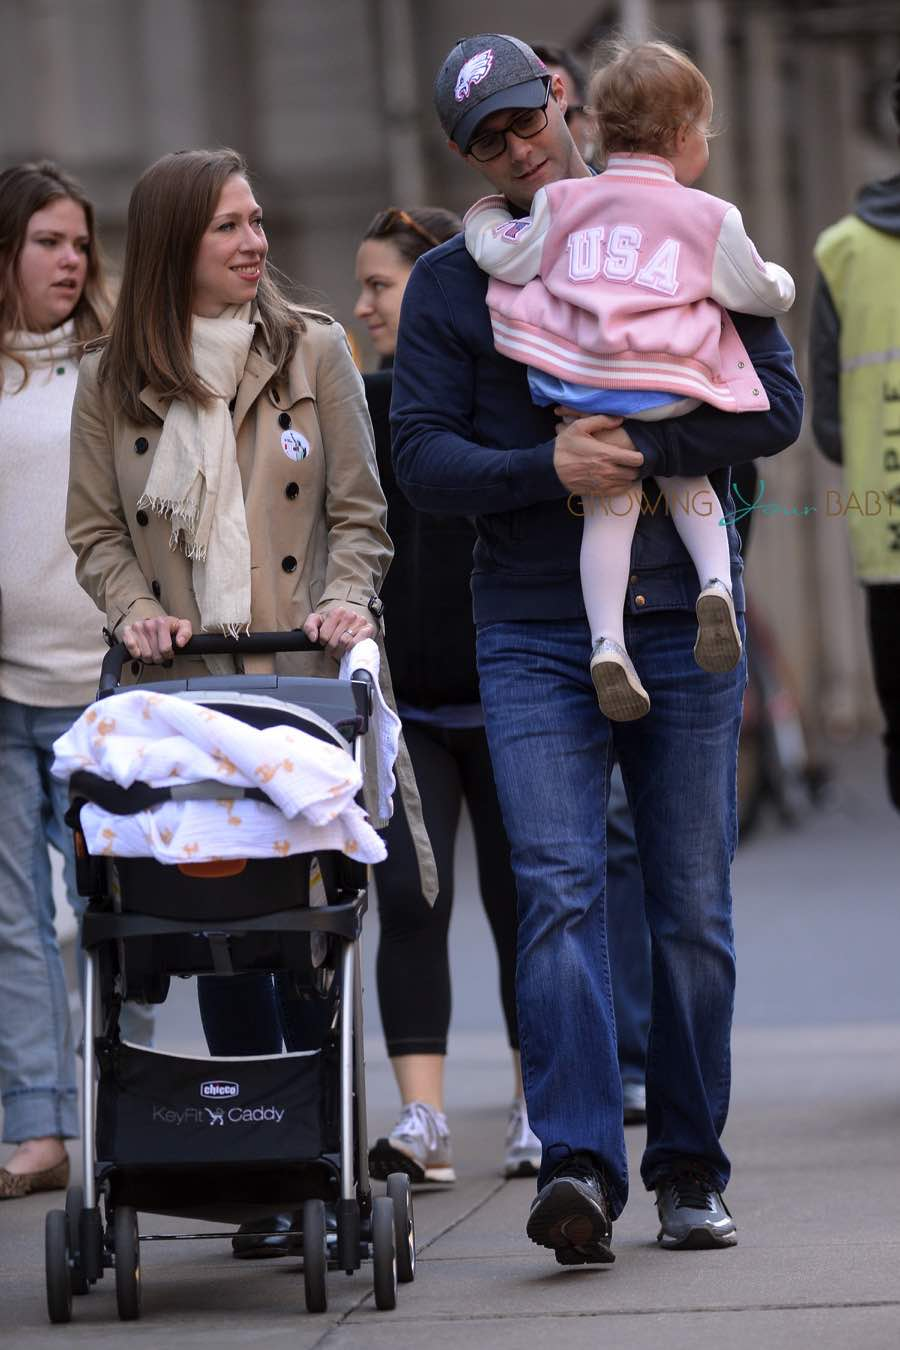 Chelsea Clinton Marc Mezvinsky And Daughter Charlotte